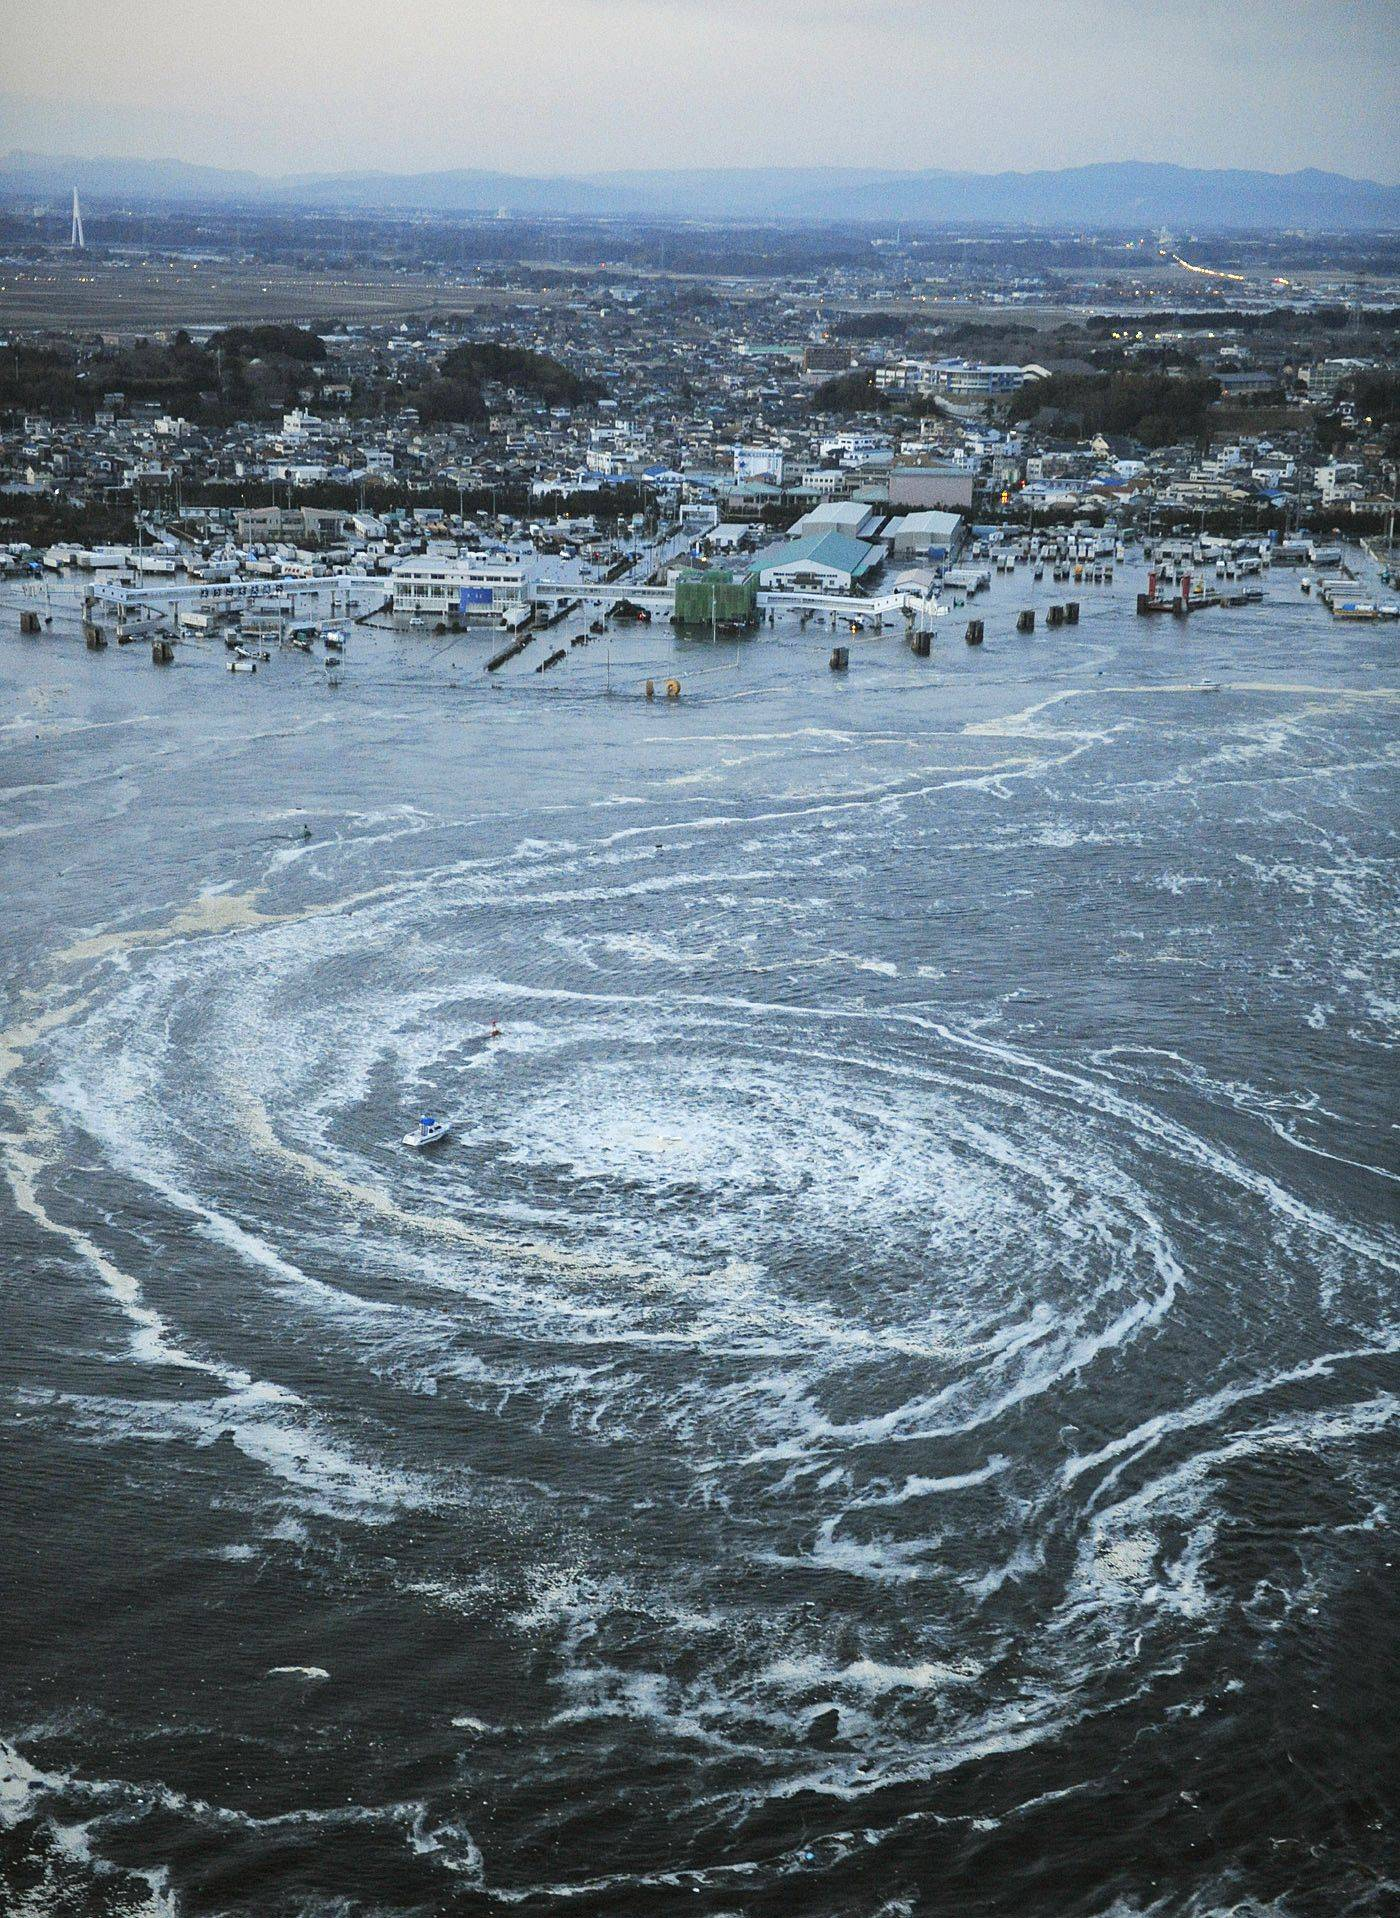 Tsunami swirls near a port in Oarai, Ibaraki Prefecture (state) after Japan was struck by a strong earthquake off its northeastern coast on Friday